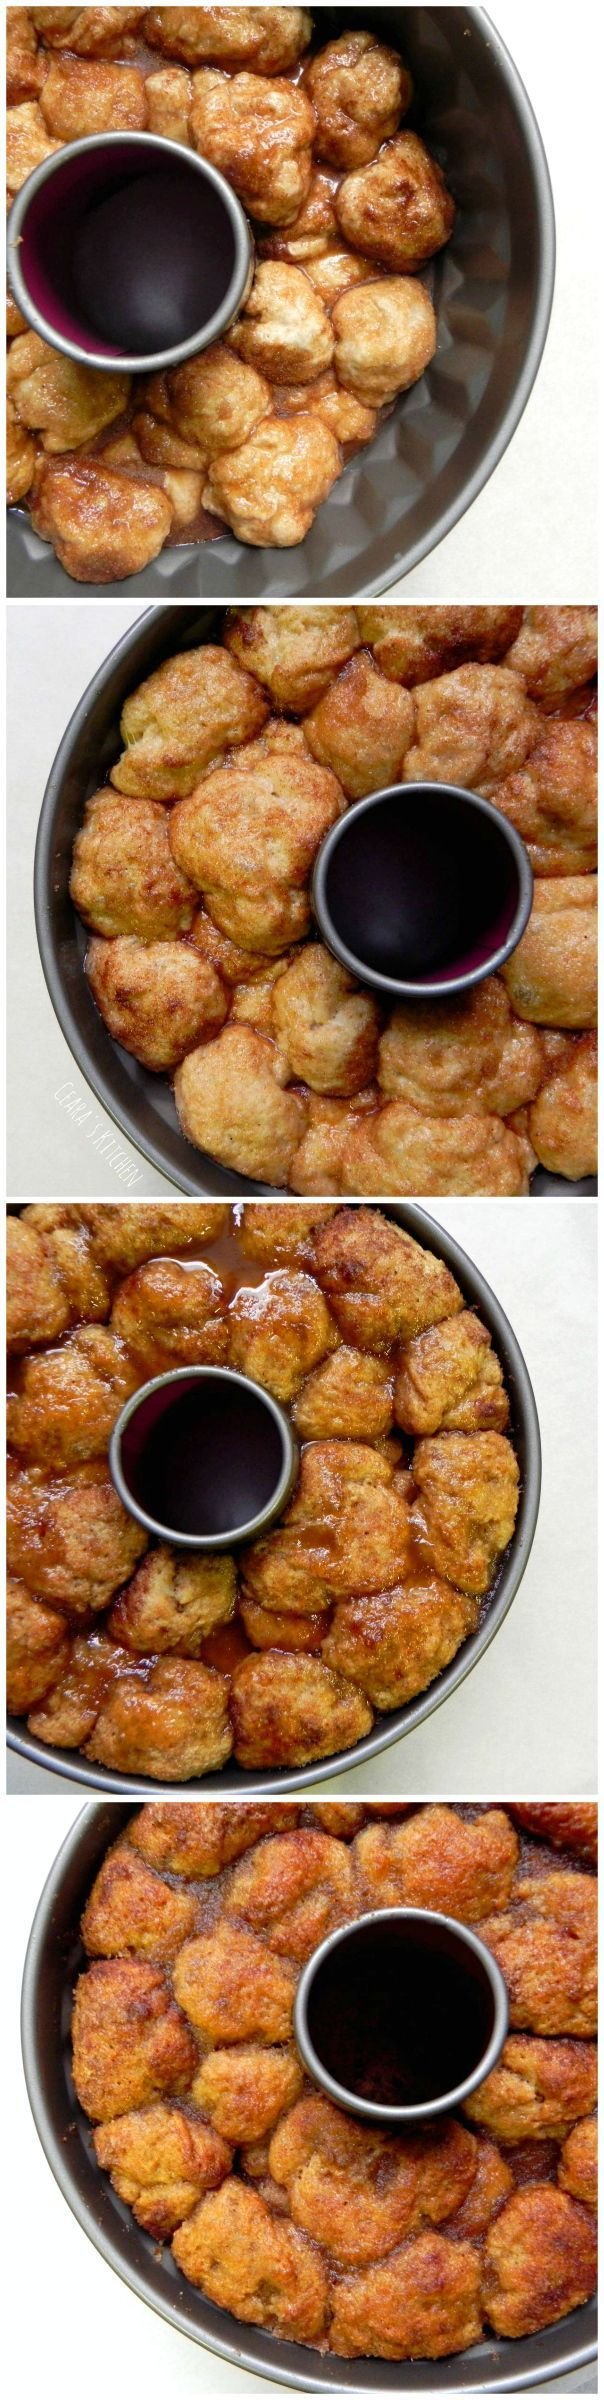 This HEALTHY Monkey Bread is the BEST! A sweet cinnamon-sugar, pull apart bread that is hard to resist! #VEGAN - Ceara's Kitchen